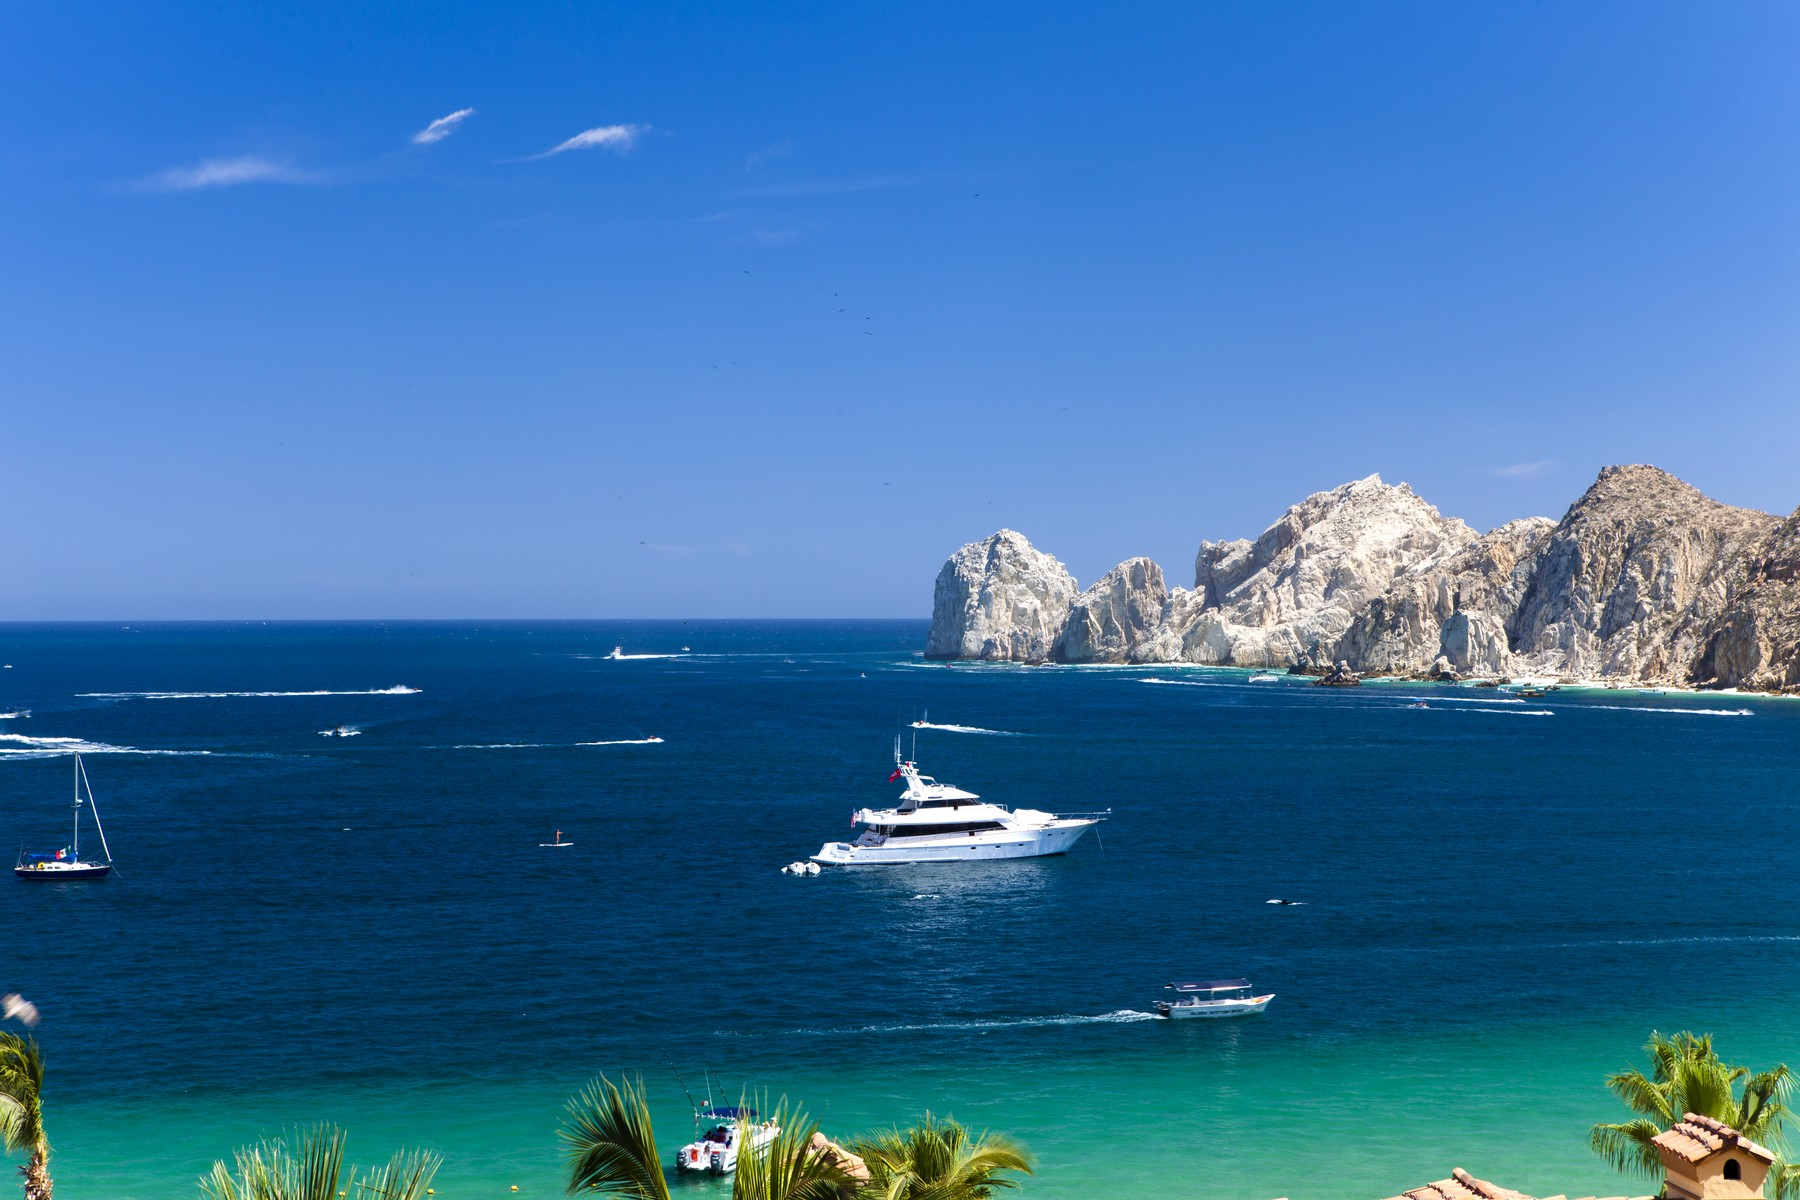 Condominium for Rent at Collection 1303 Hacienda Beach Club & Residences Collection 1303, Cabo San Lucas, Baja California Sur, 23453 Mexico